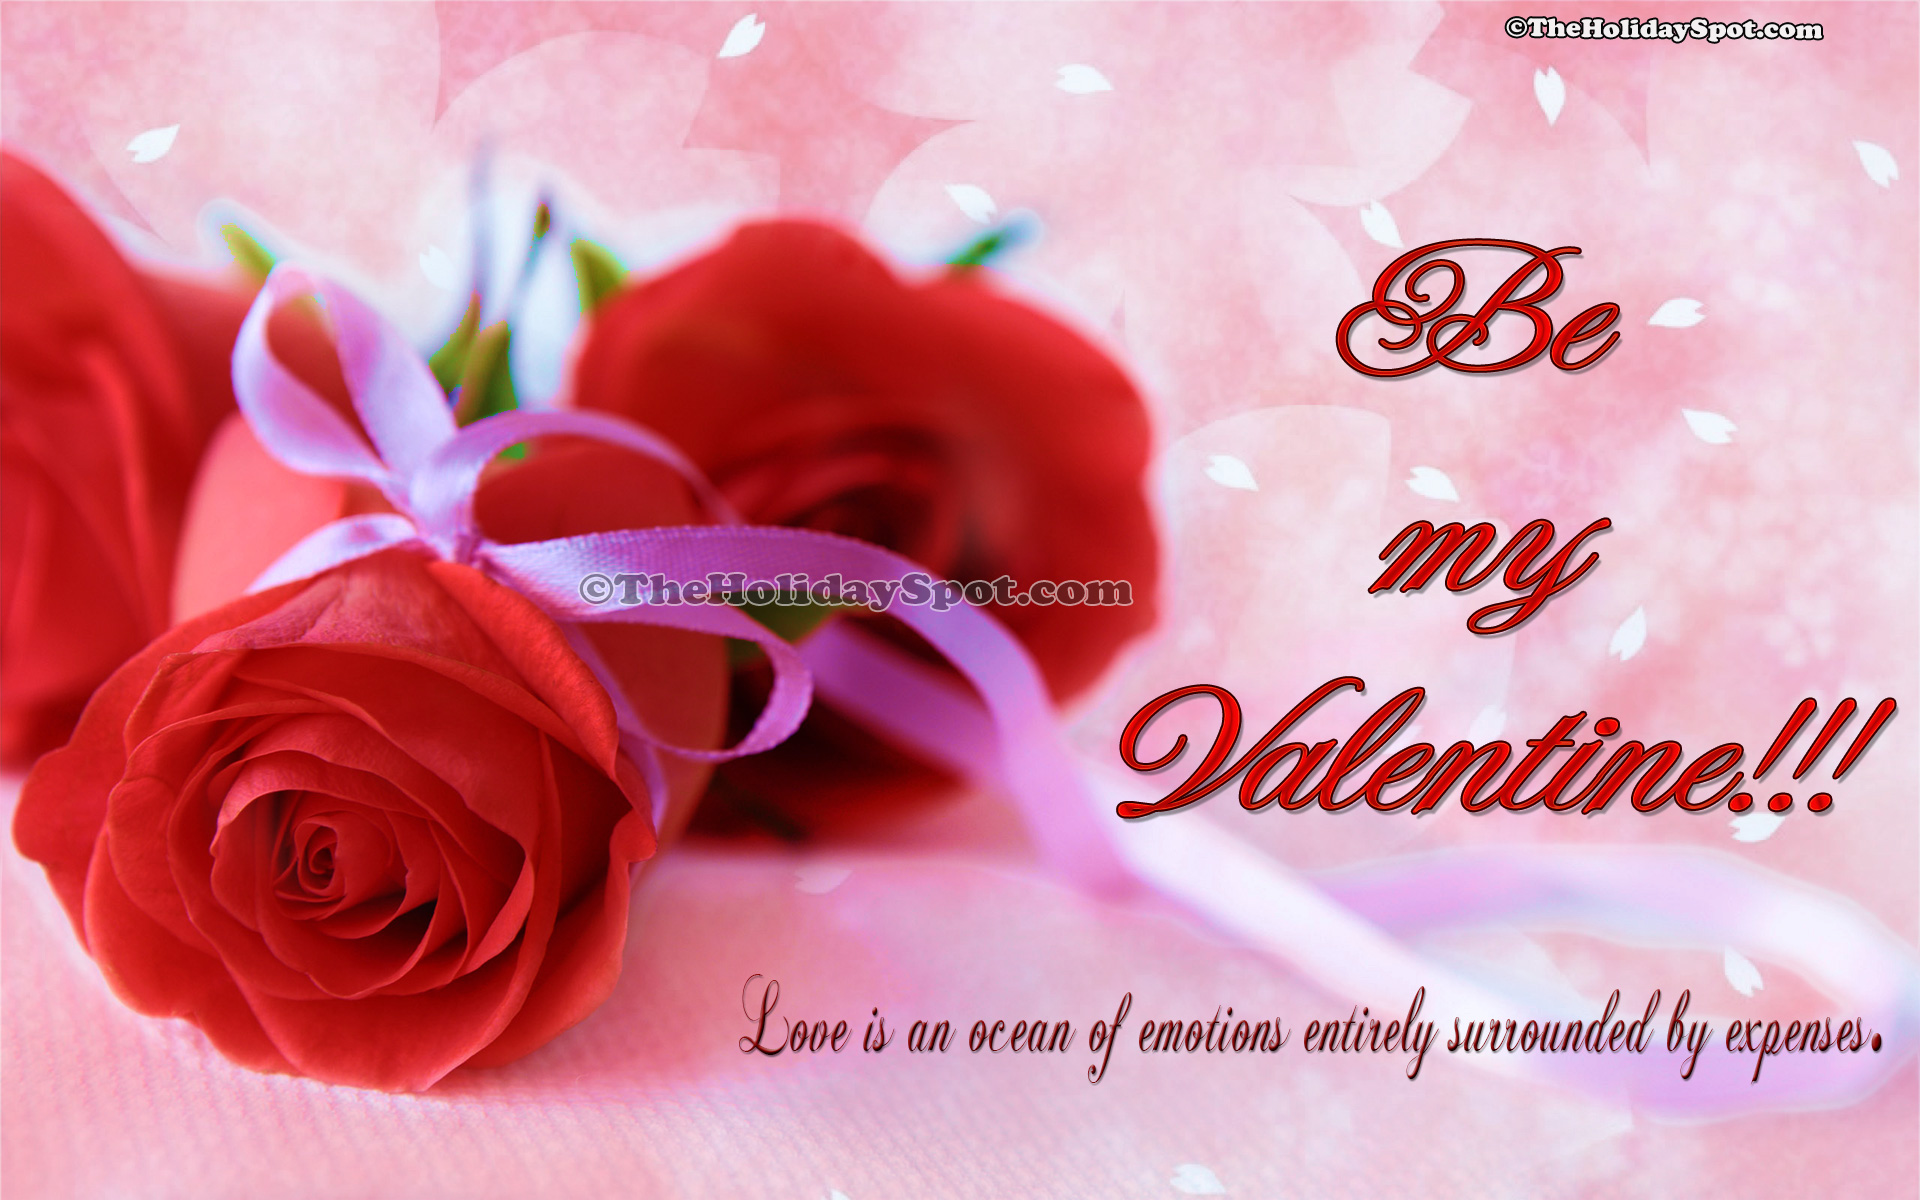 83 free valentine's day wallpapers for download | valentine's day